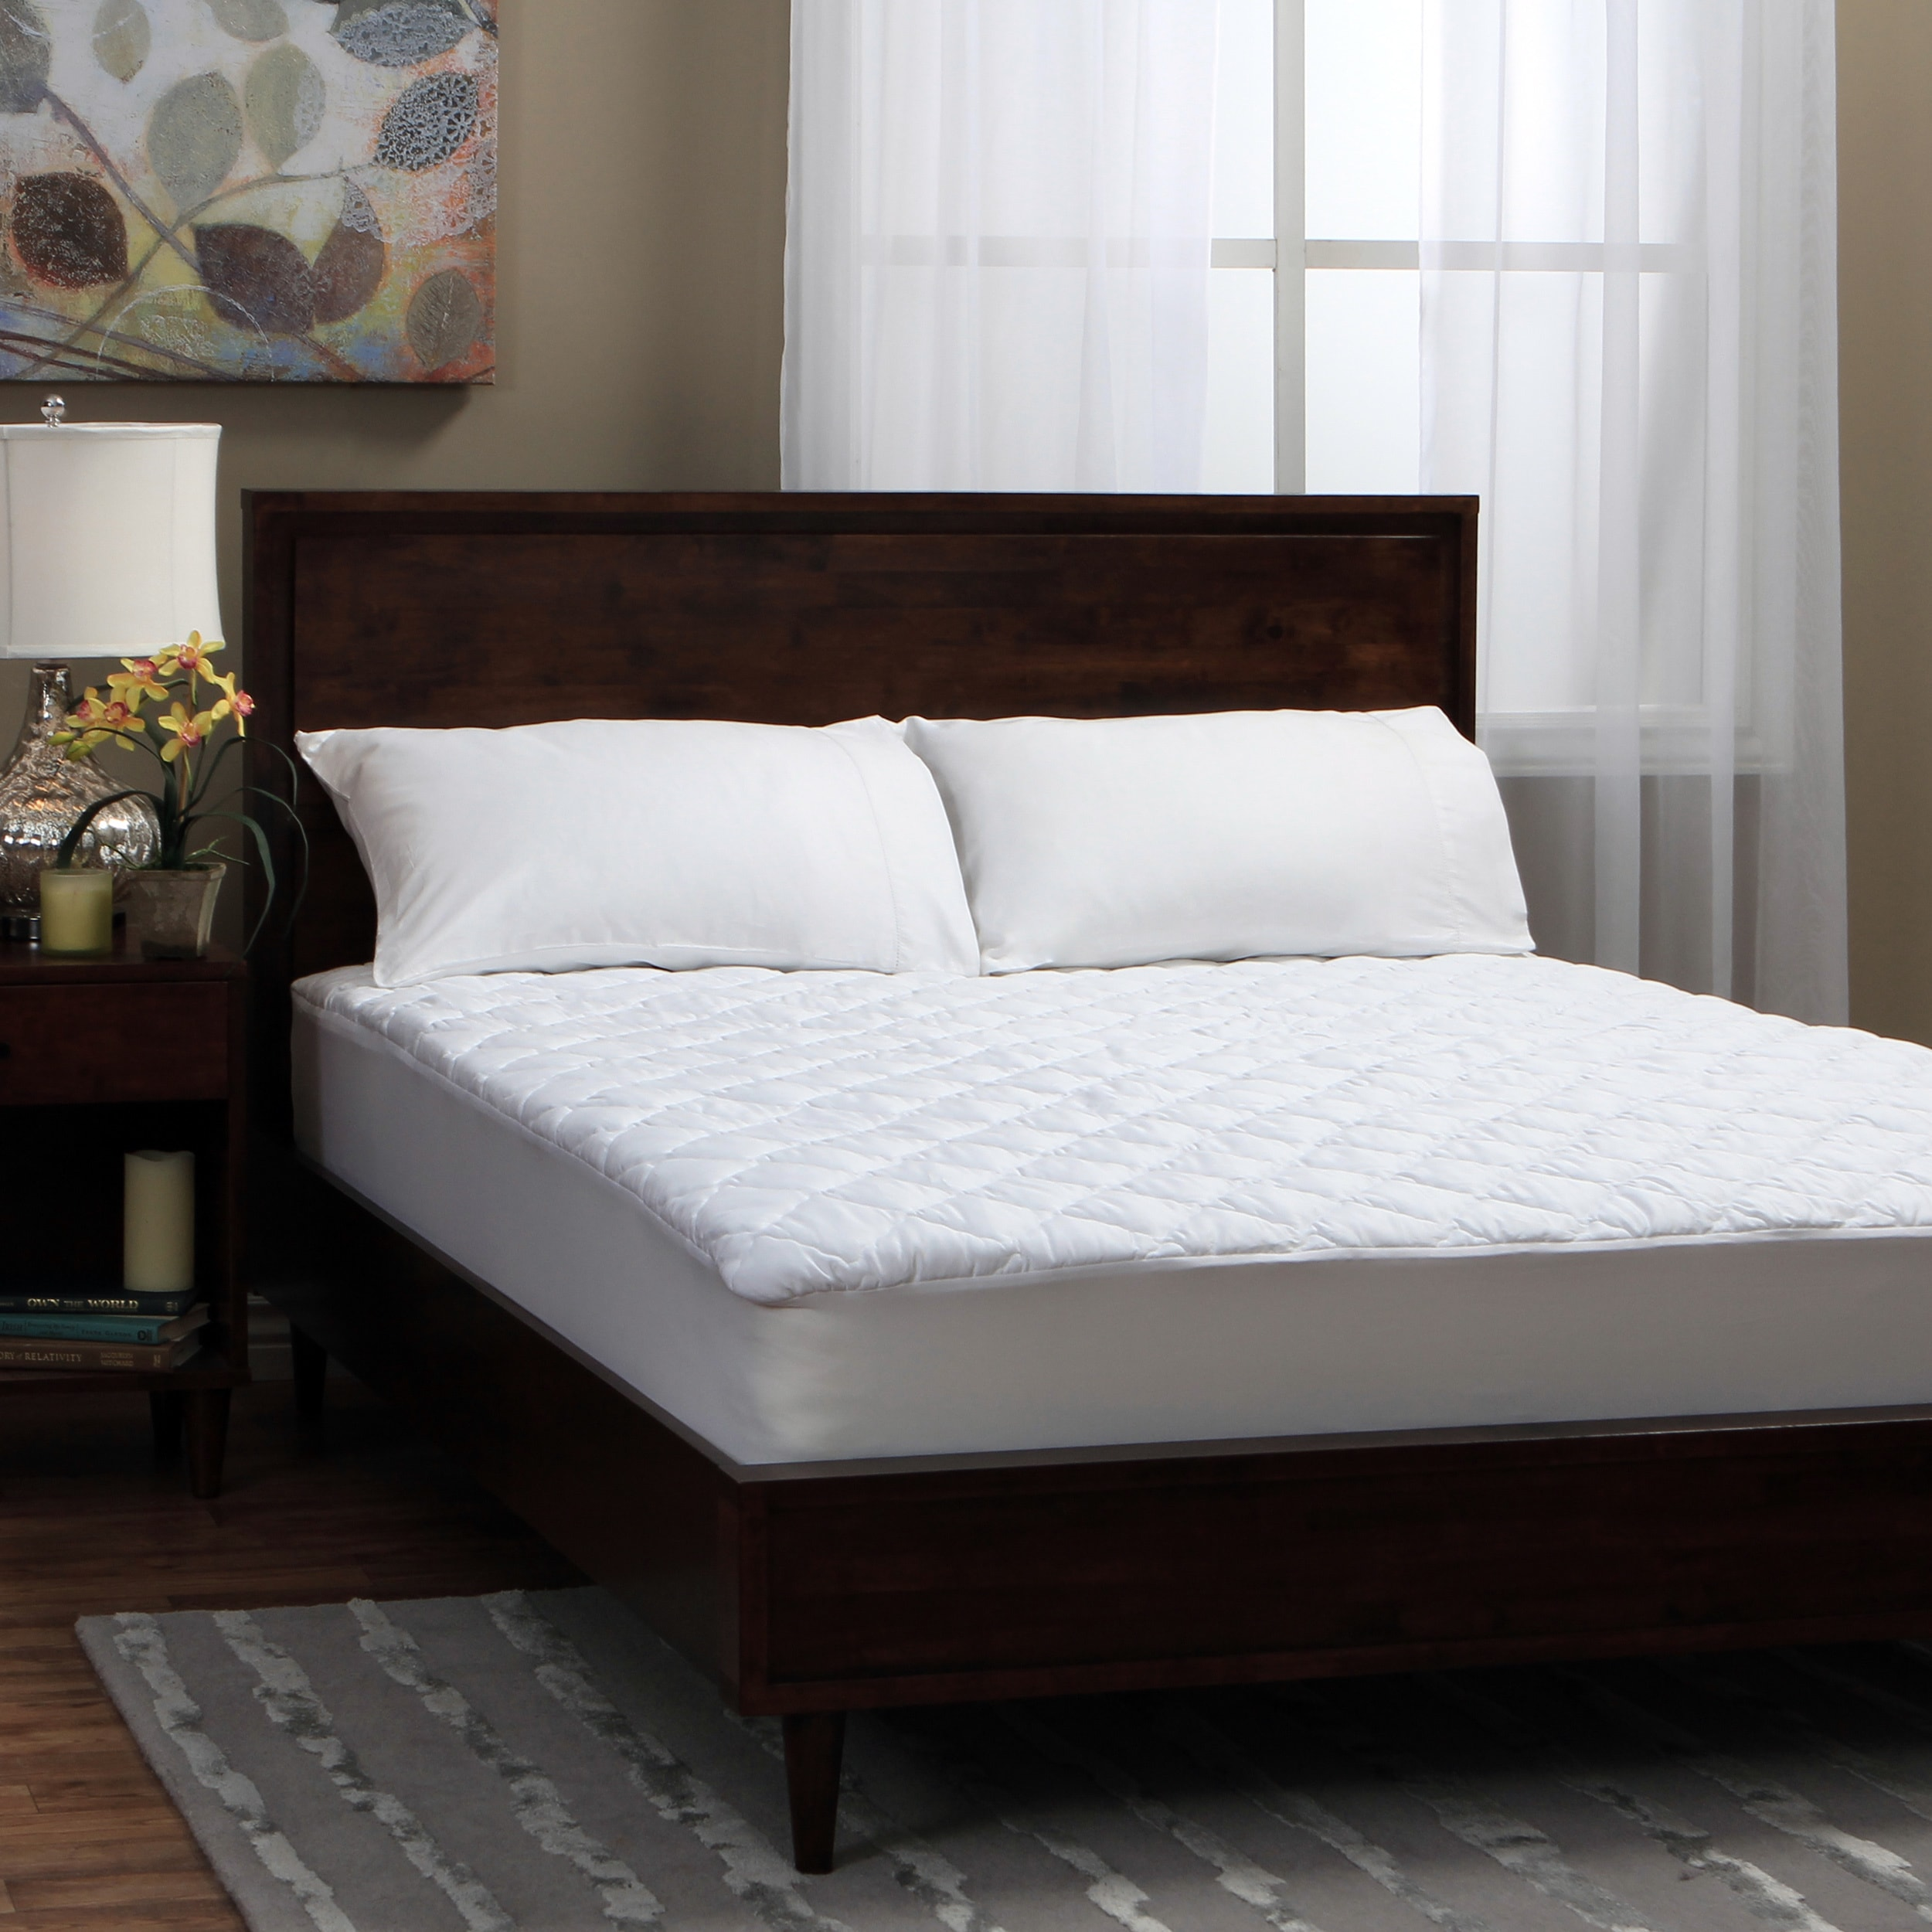 Tommy bahama triple protection stain release waterproof mattress tommy bahama triple protection stain release waterproof mattress pad free shipping today overstock 16290320 arubaitofo Choice Image